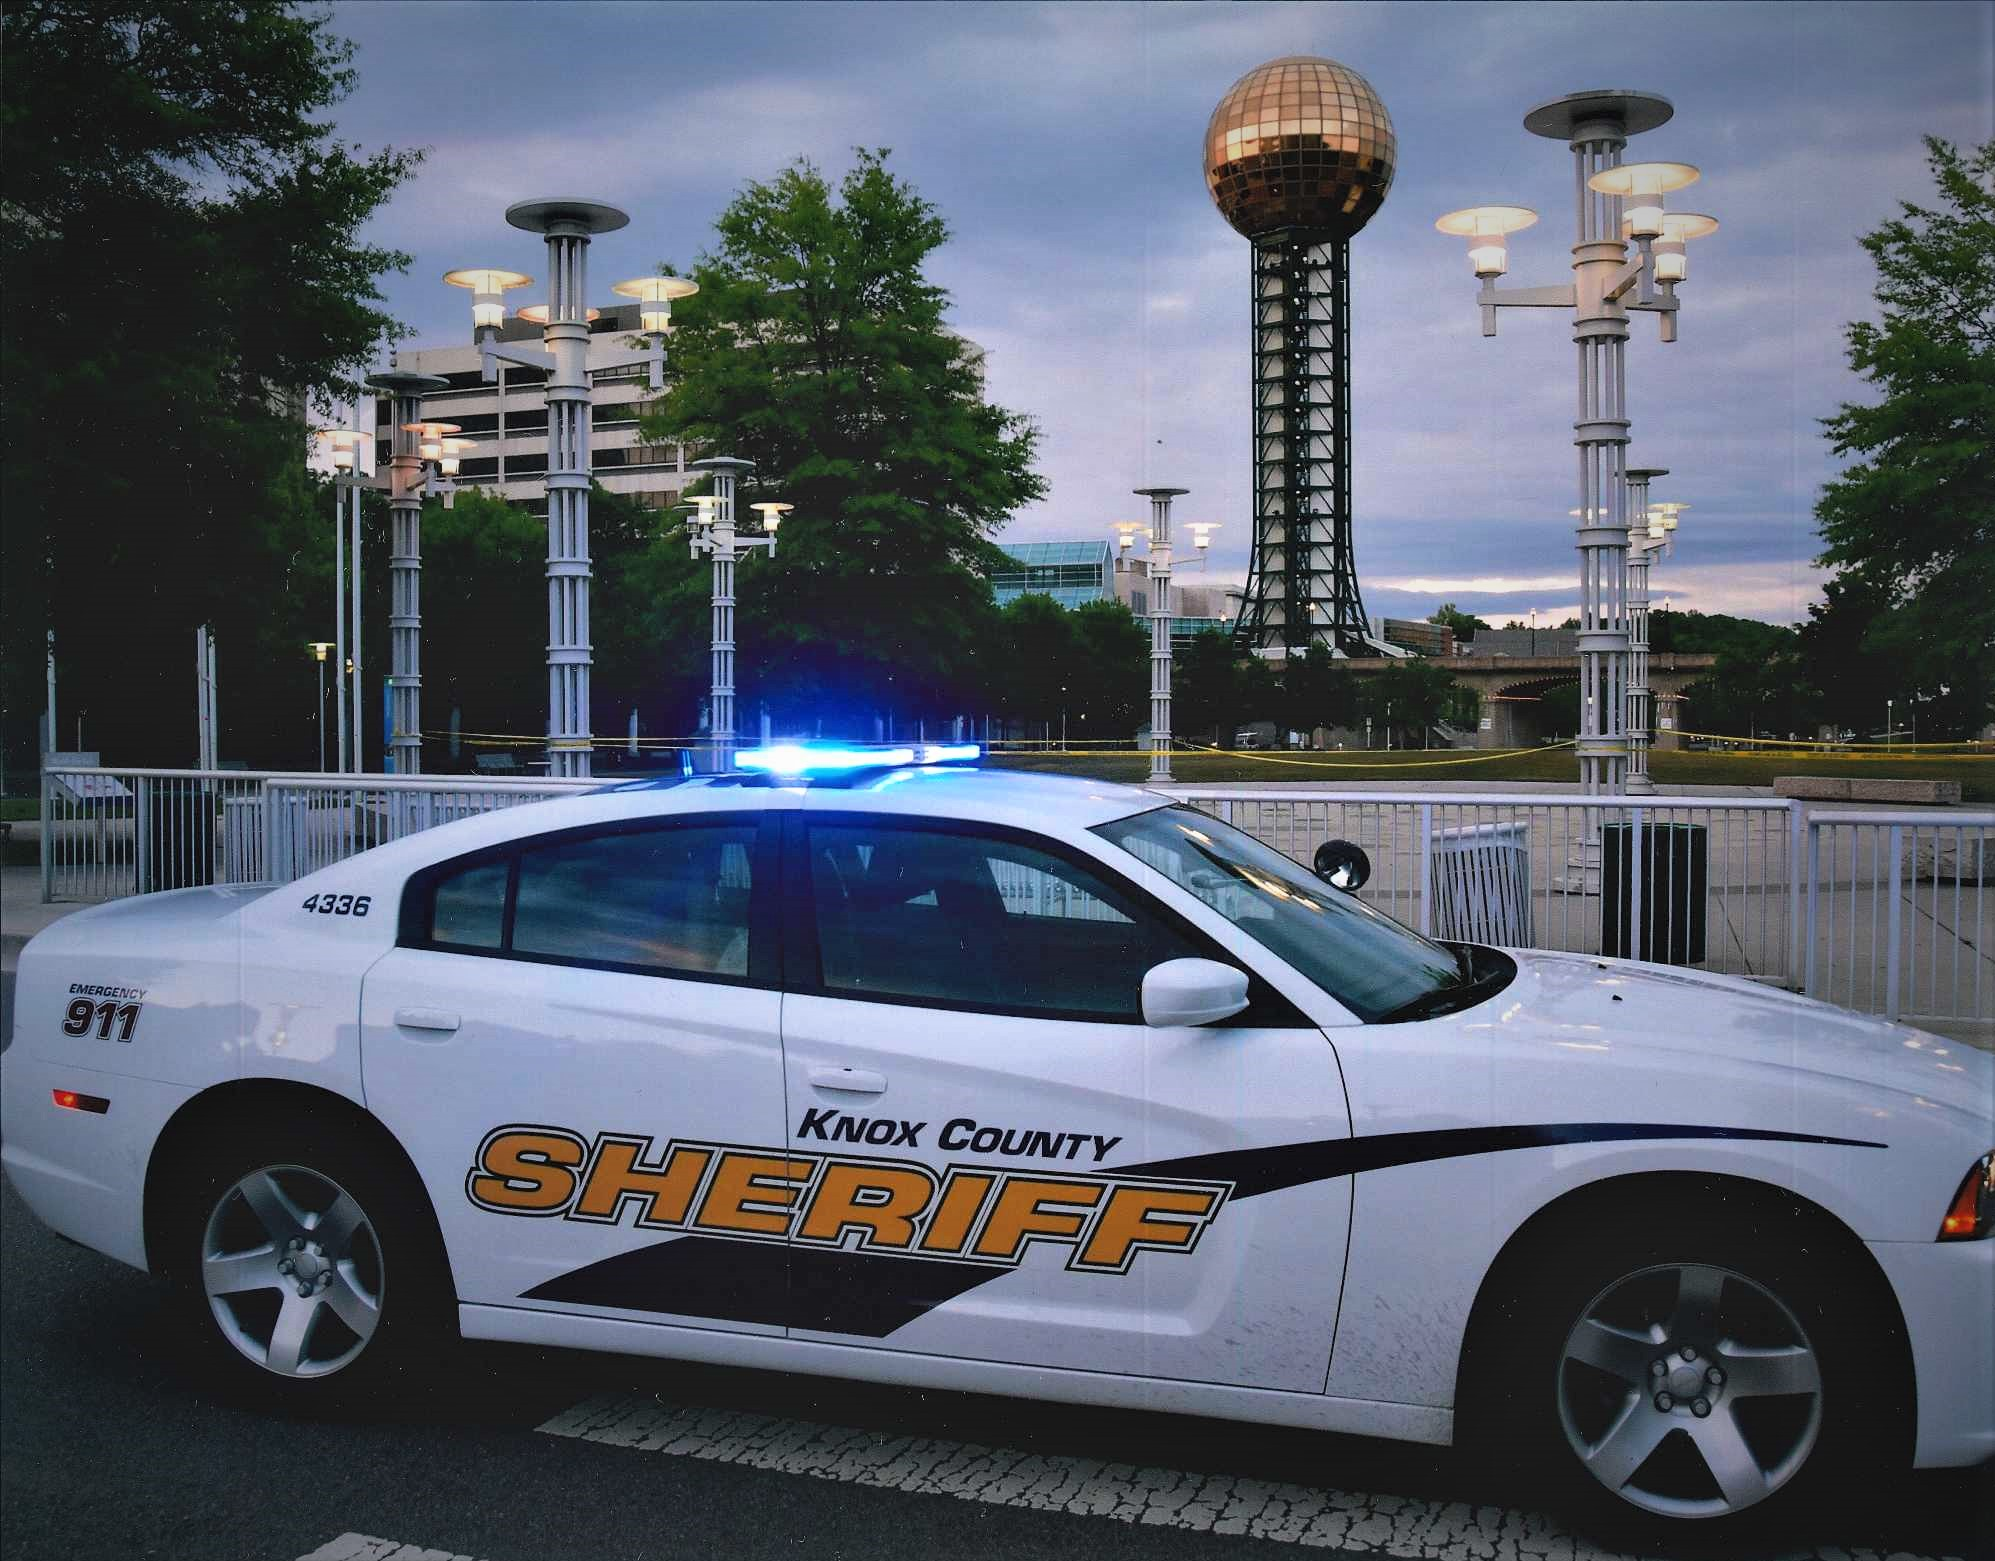 KCSO cruising parked in front of sunsphere with emergency lights on